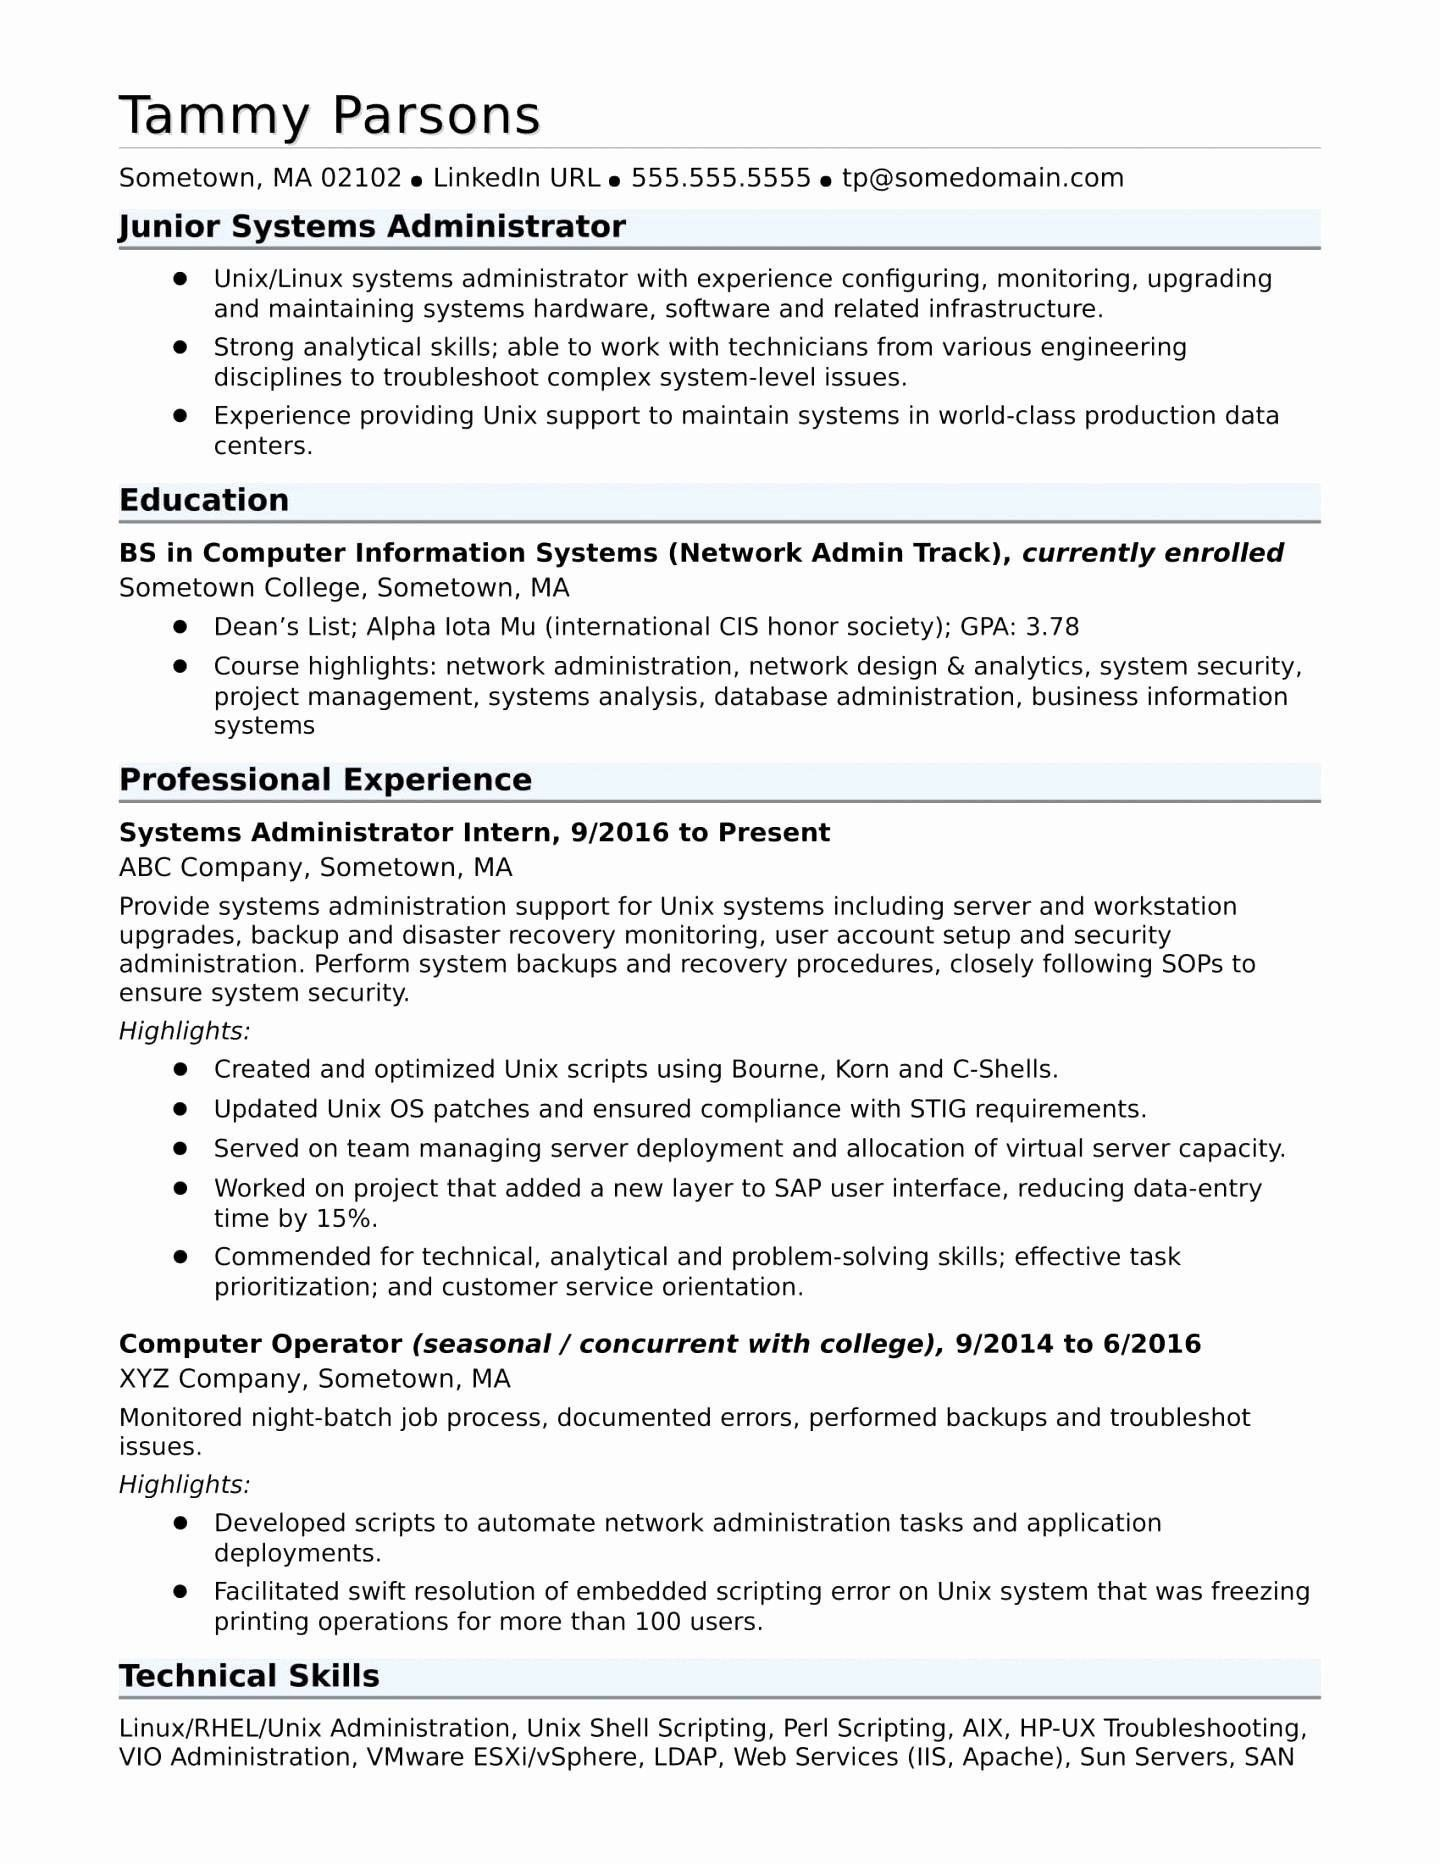 Adding Resume To Linkedin 12 How To List Nanny Resume Resume Examples Resume Skills Job Resume Examples